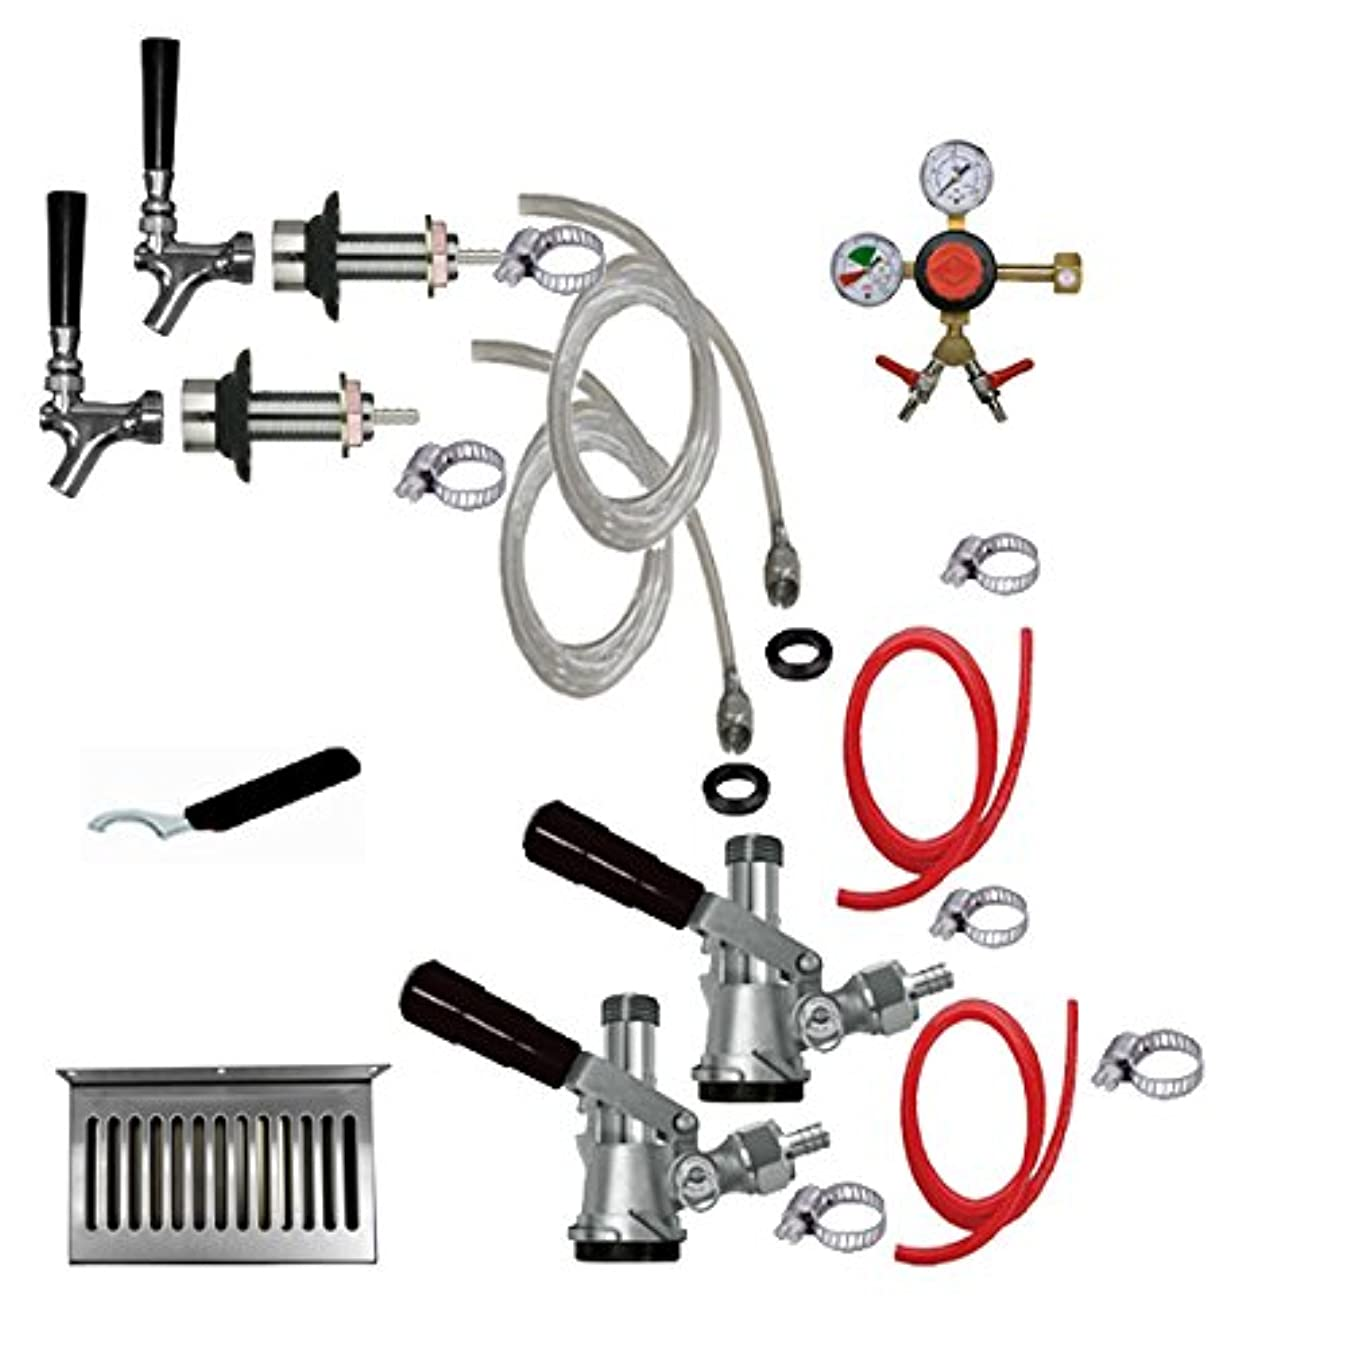 Bev Rite CRCK102 Premium Refrigerator Conversion Kit Door Mount Keg Tap Beer Double Line, without CO2 Tank, Clear